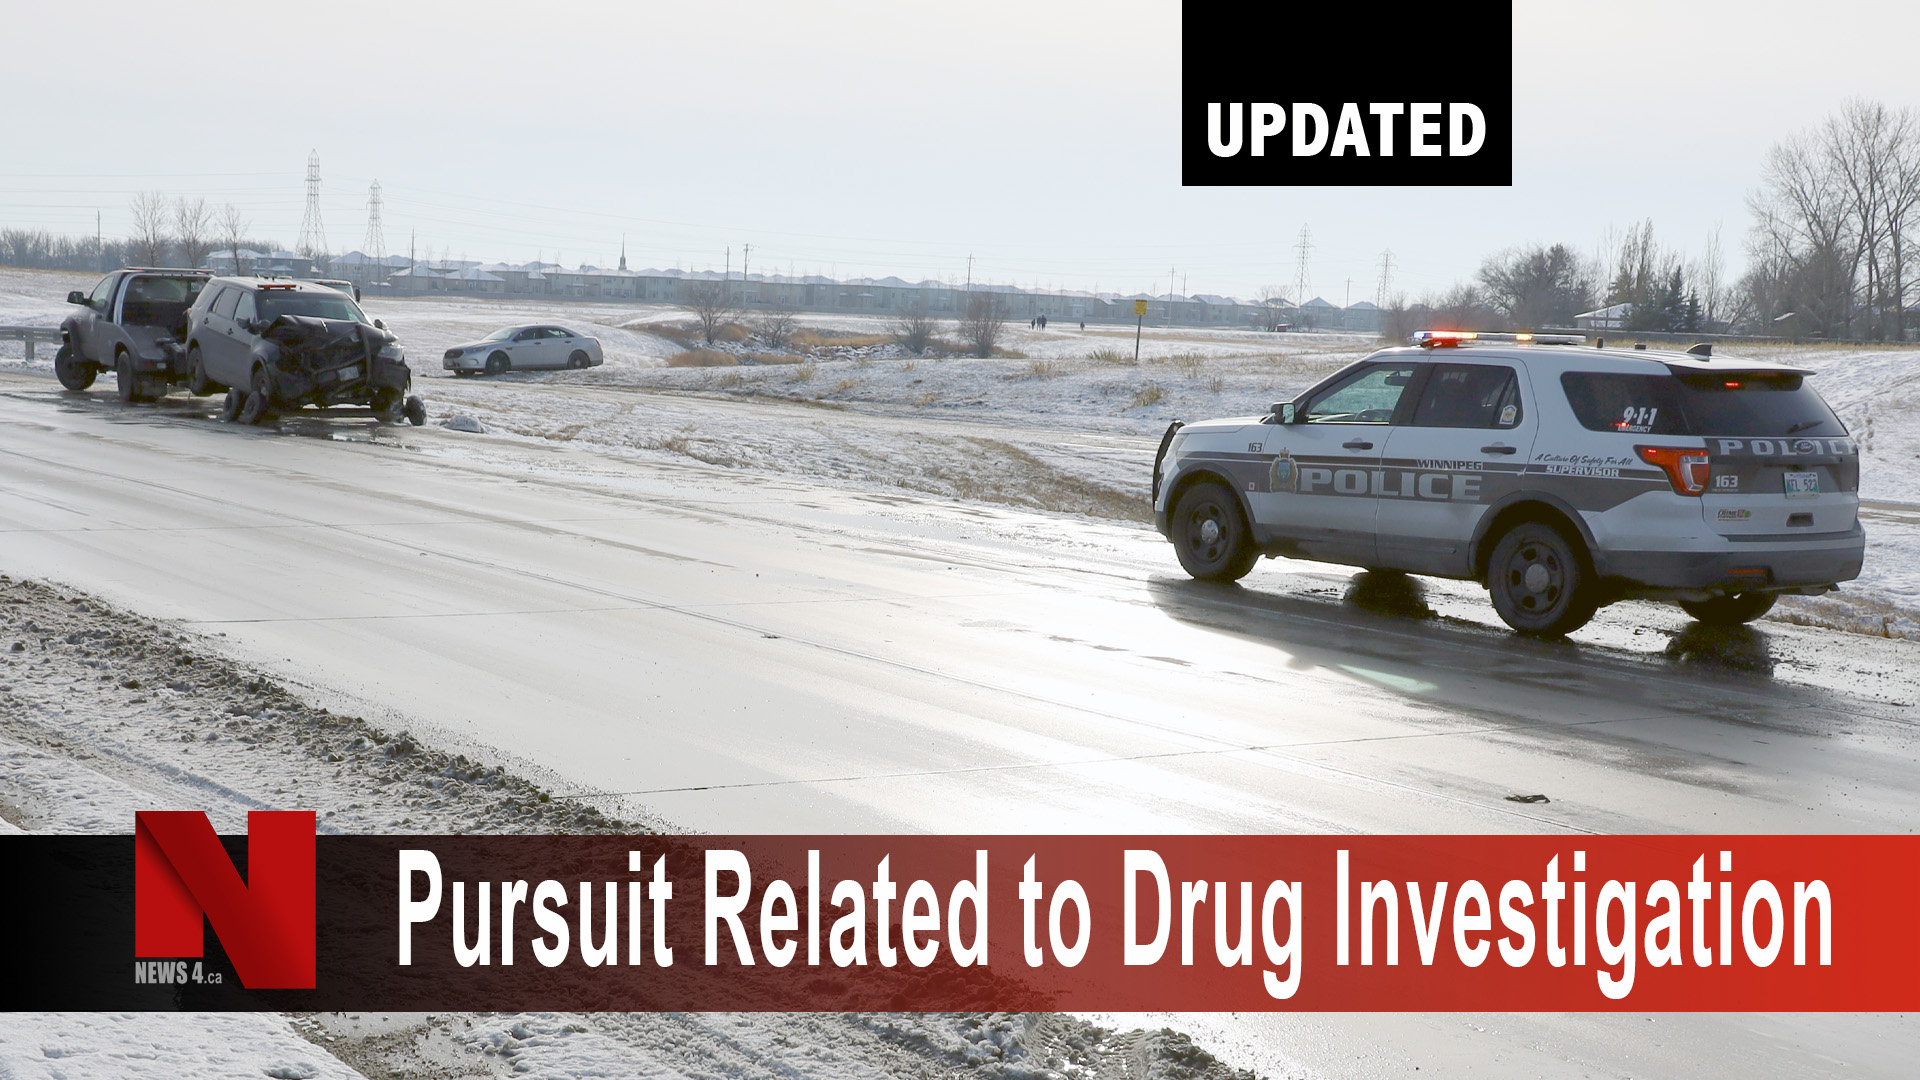 Pursuit related to drug investigation